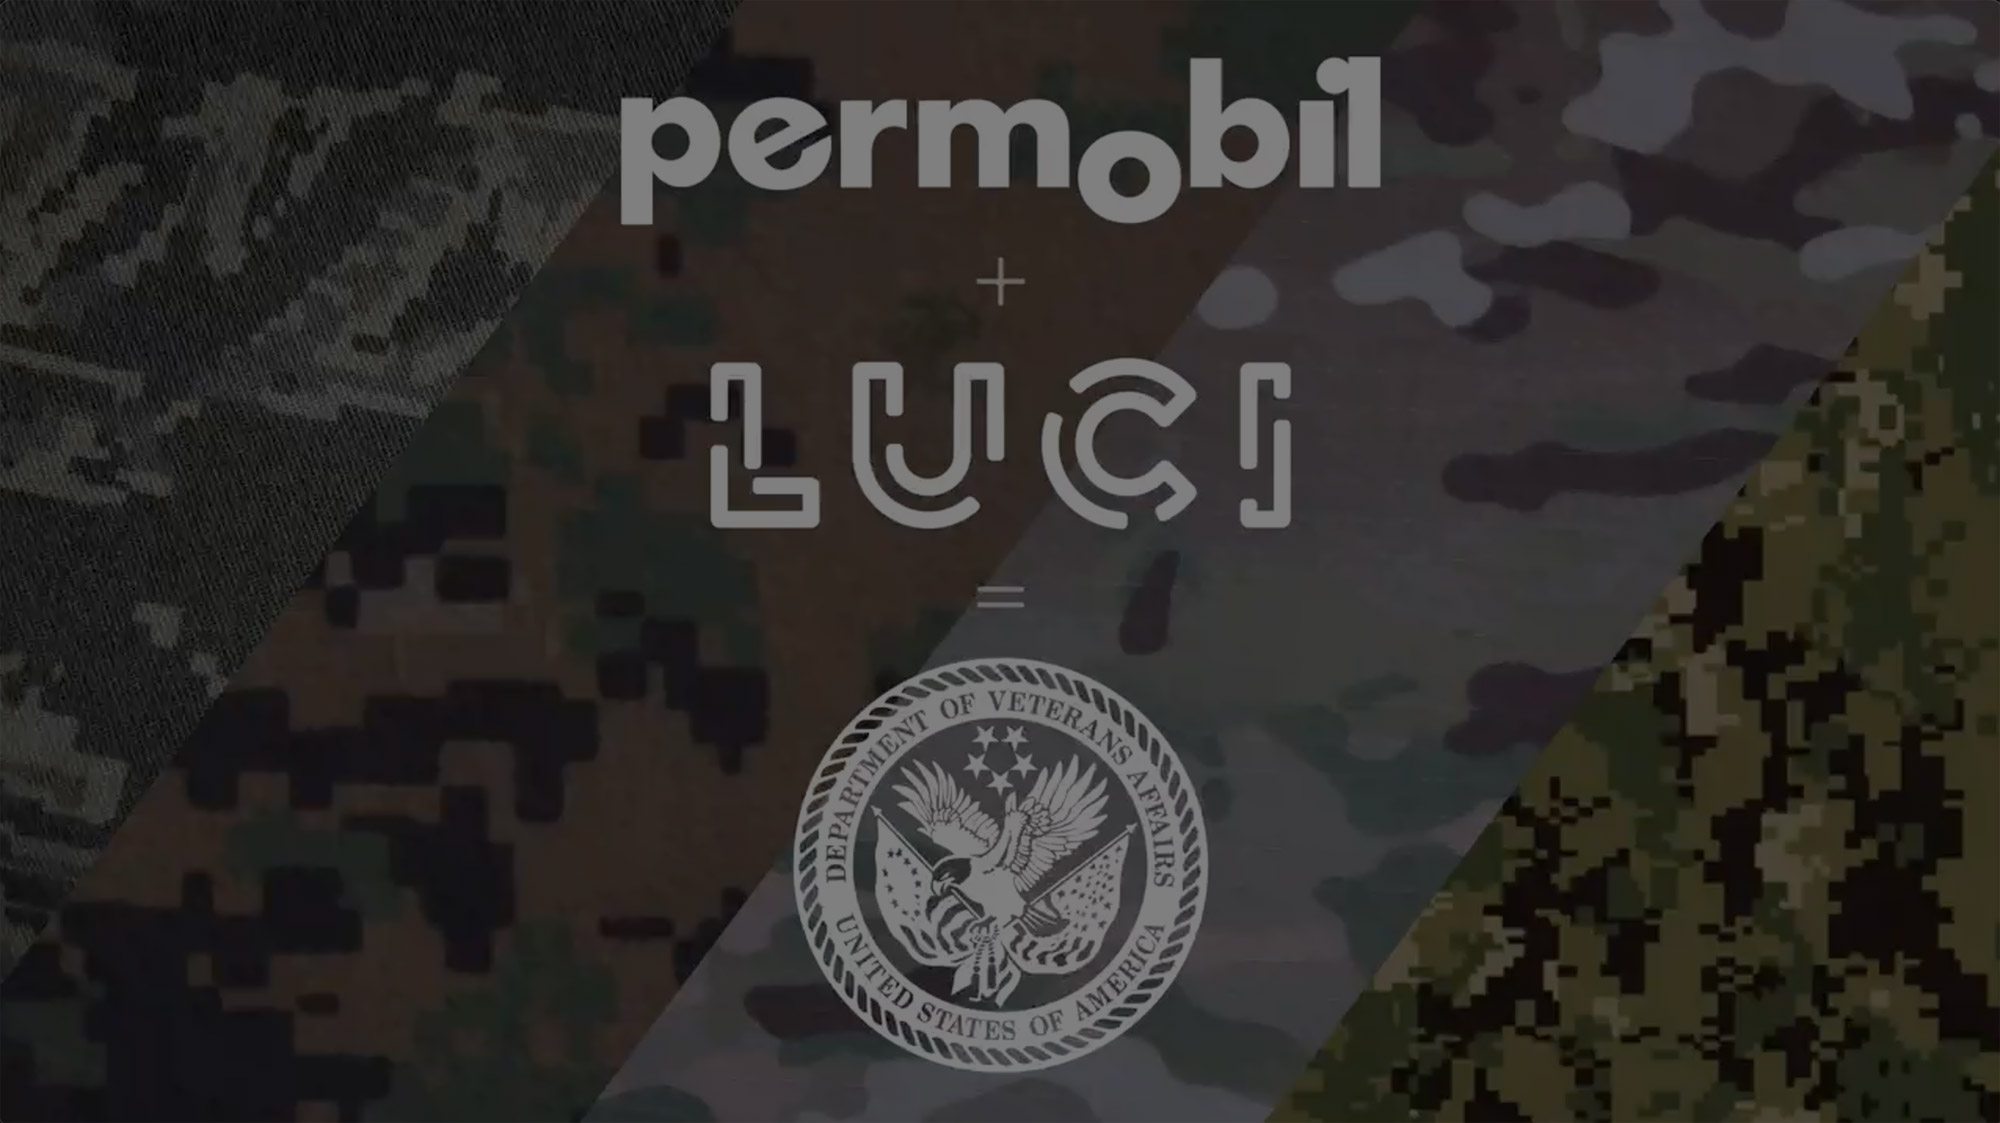 Permobil and LUCI partner to provide smart power wheelchair technology to veterans in the United States